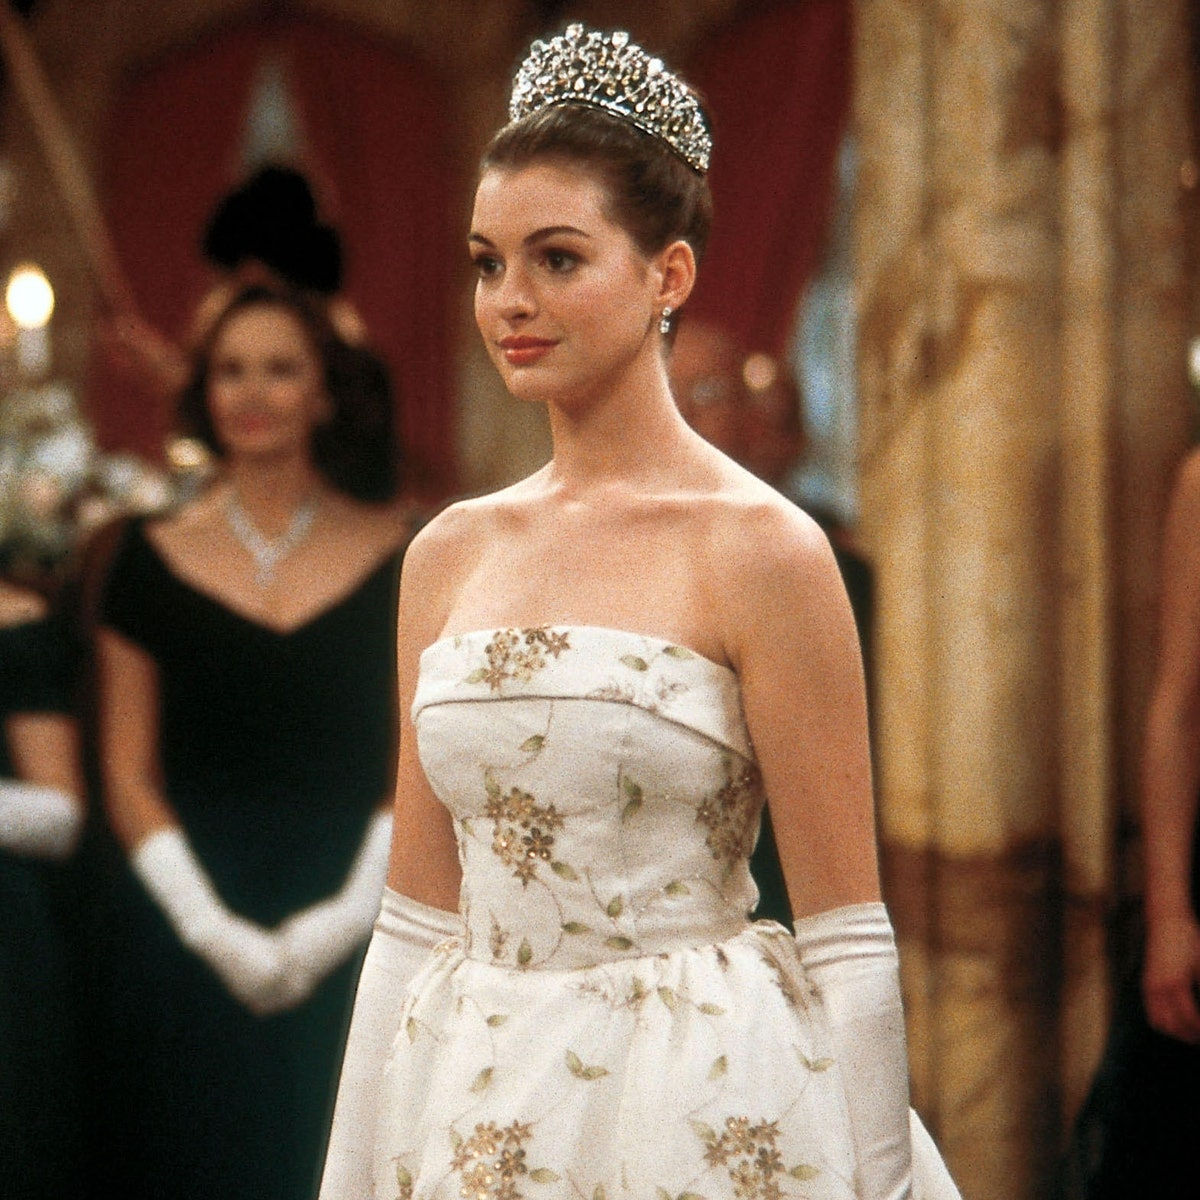 Anne Hathaway as Mia Thermopolis in 'The Princess Diaries', used to inspired your princess captions on Instagram.